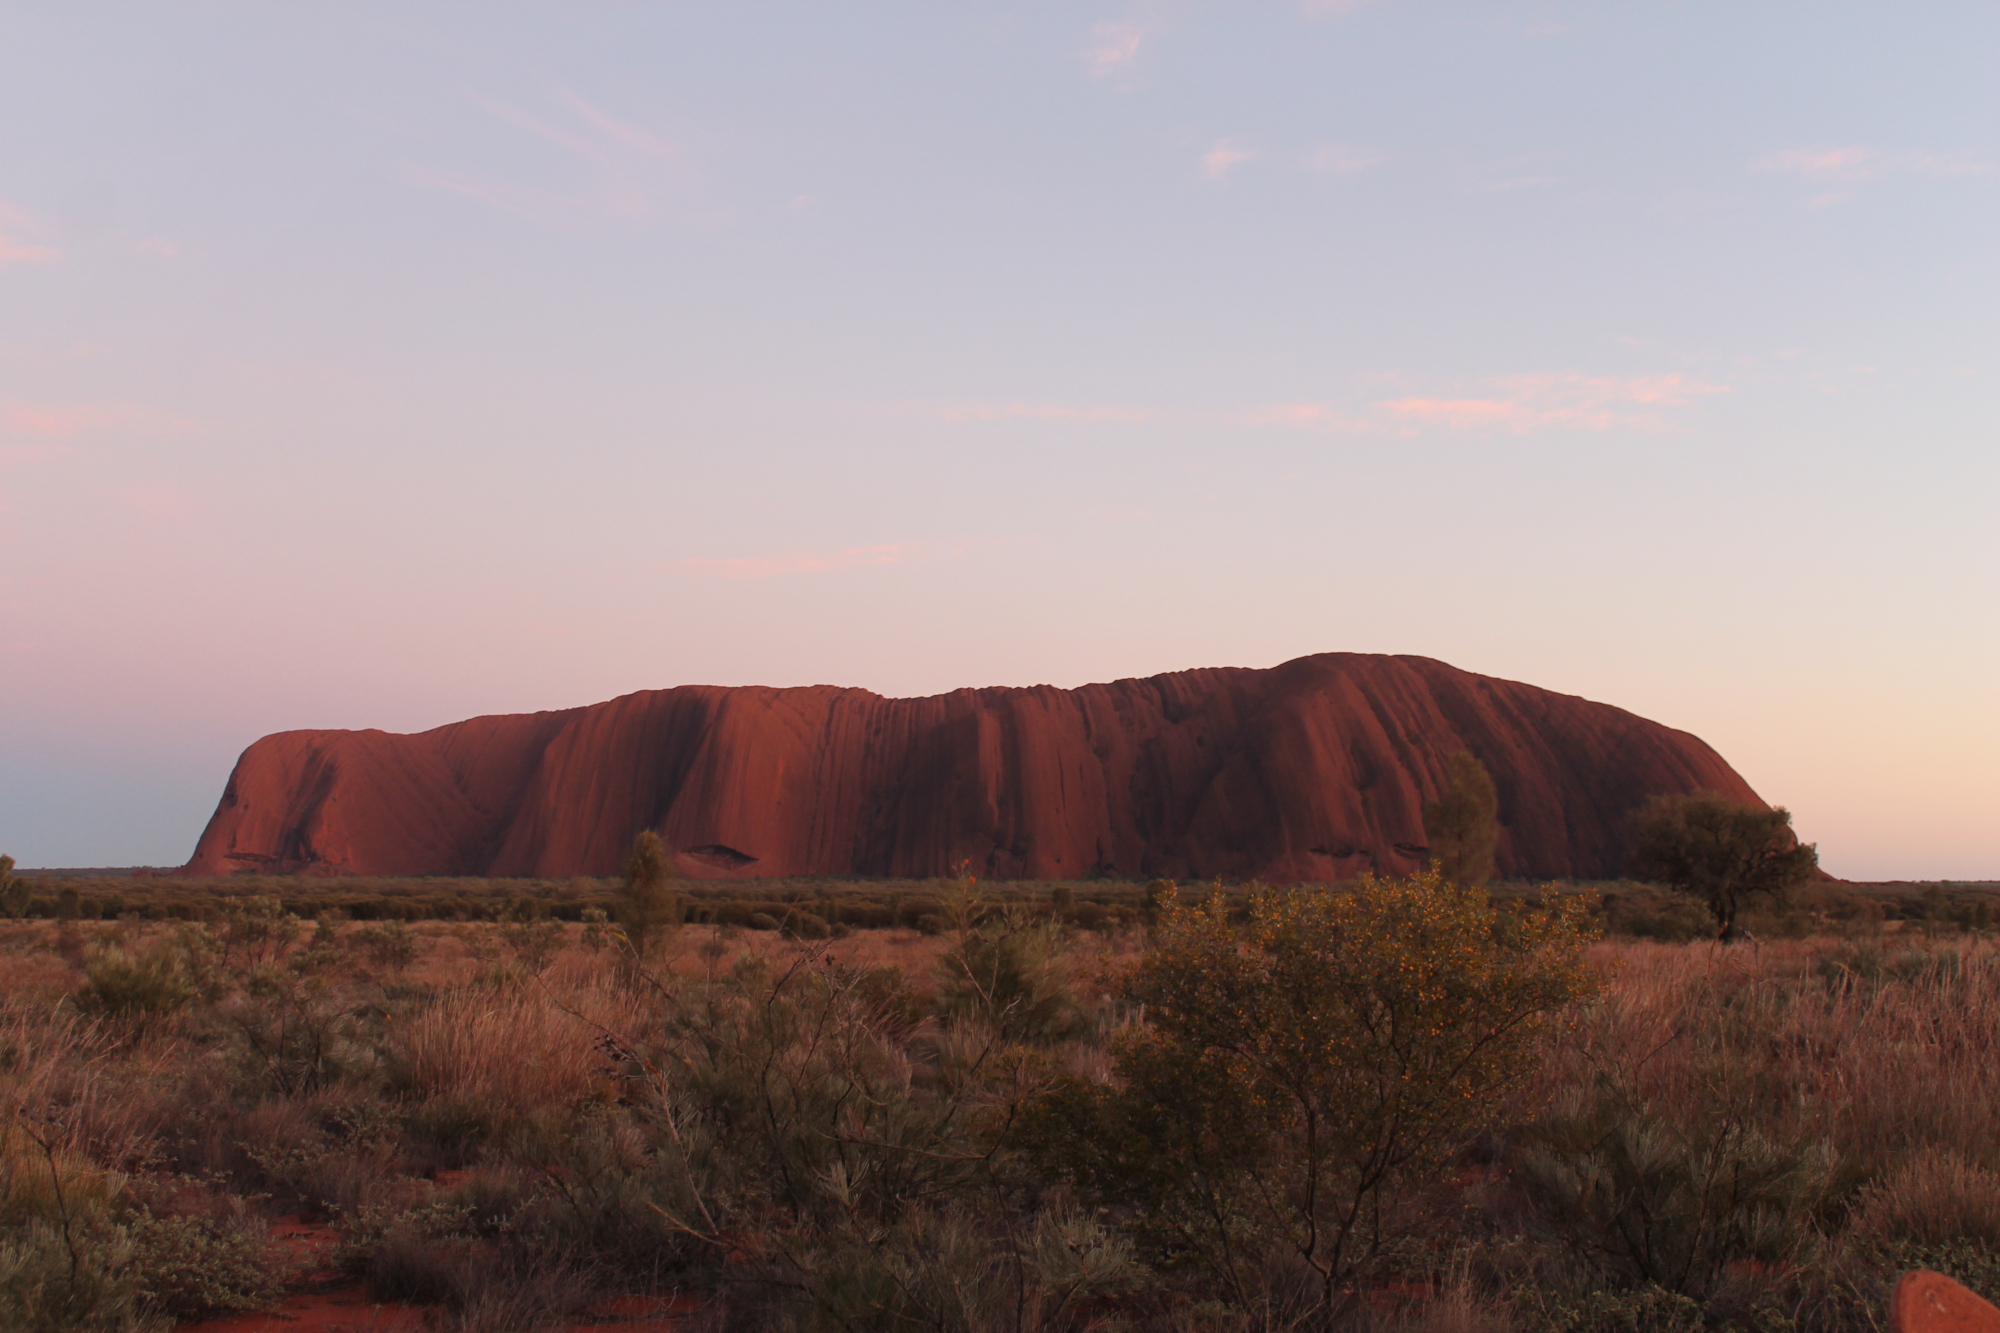 Northern Territory | Uluru Sunrise, Uluru-Kata Tjuta National Park, Central Australia